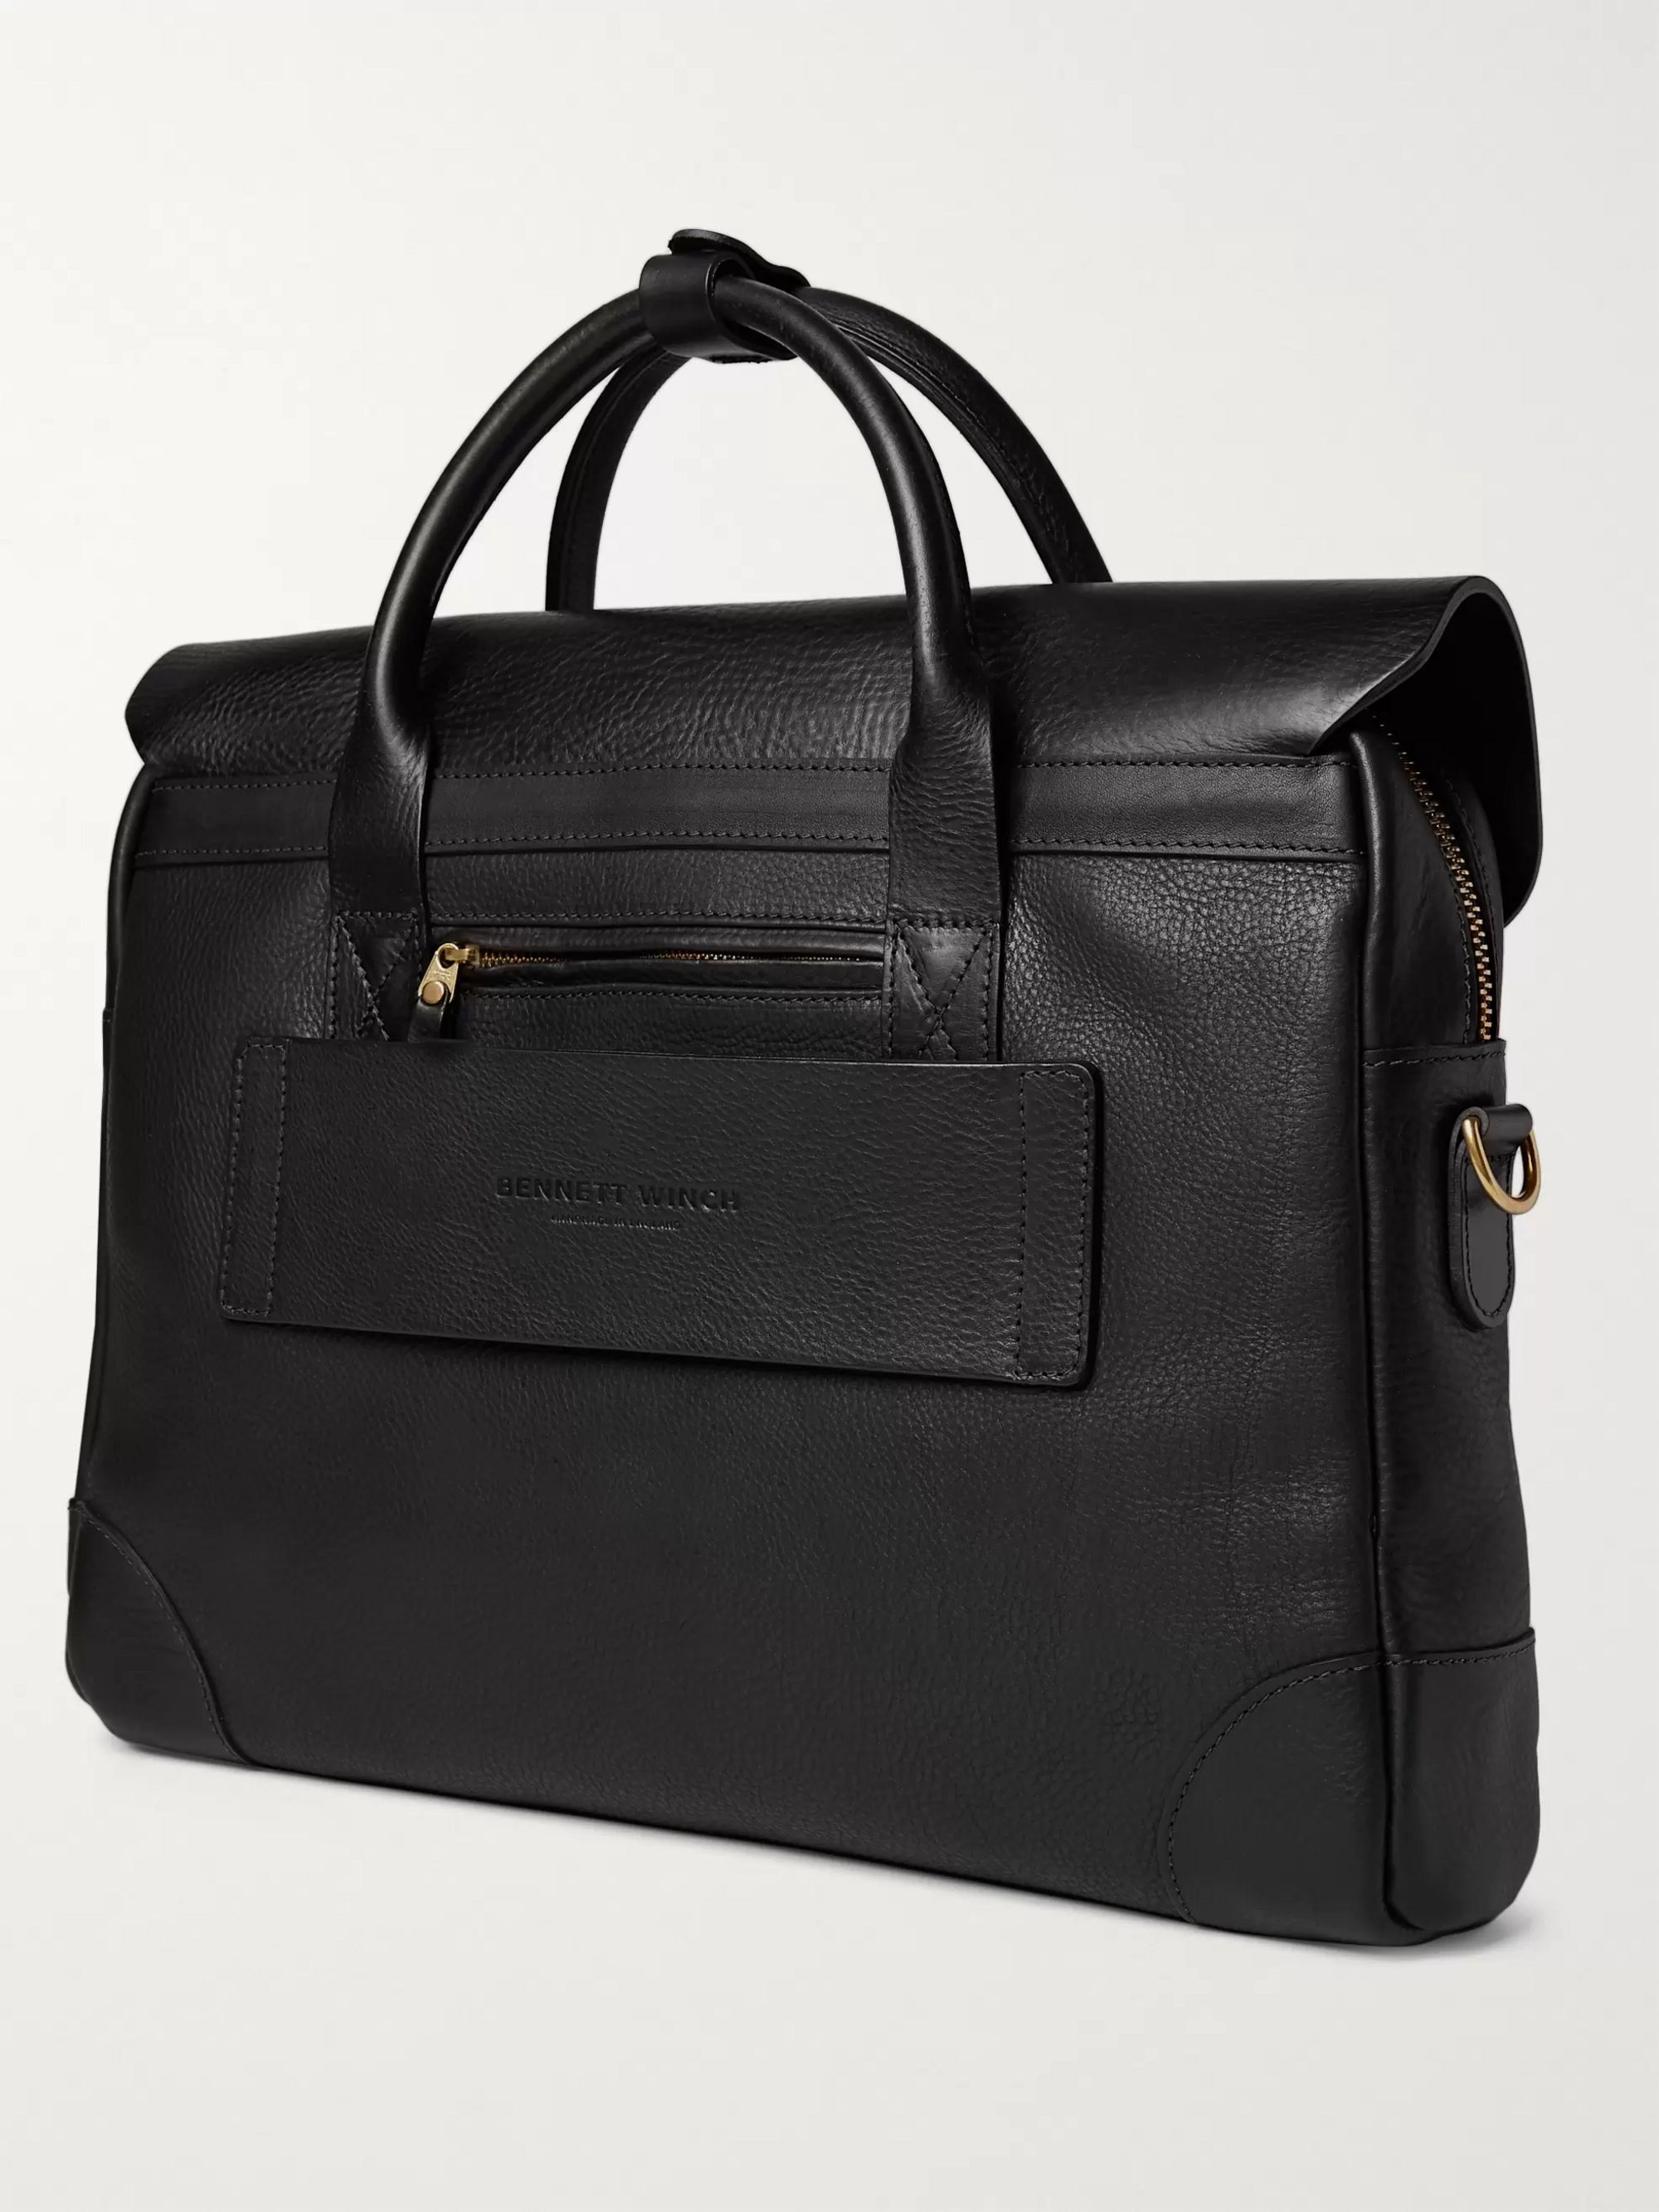 Bennett Winch Full-Grain Leather Briefcase